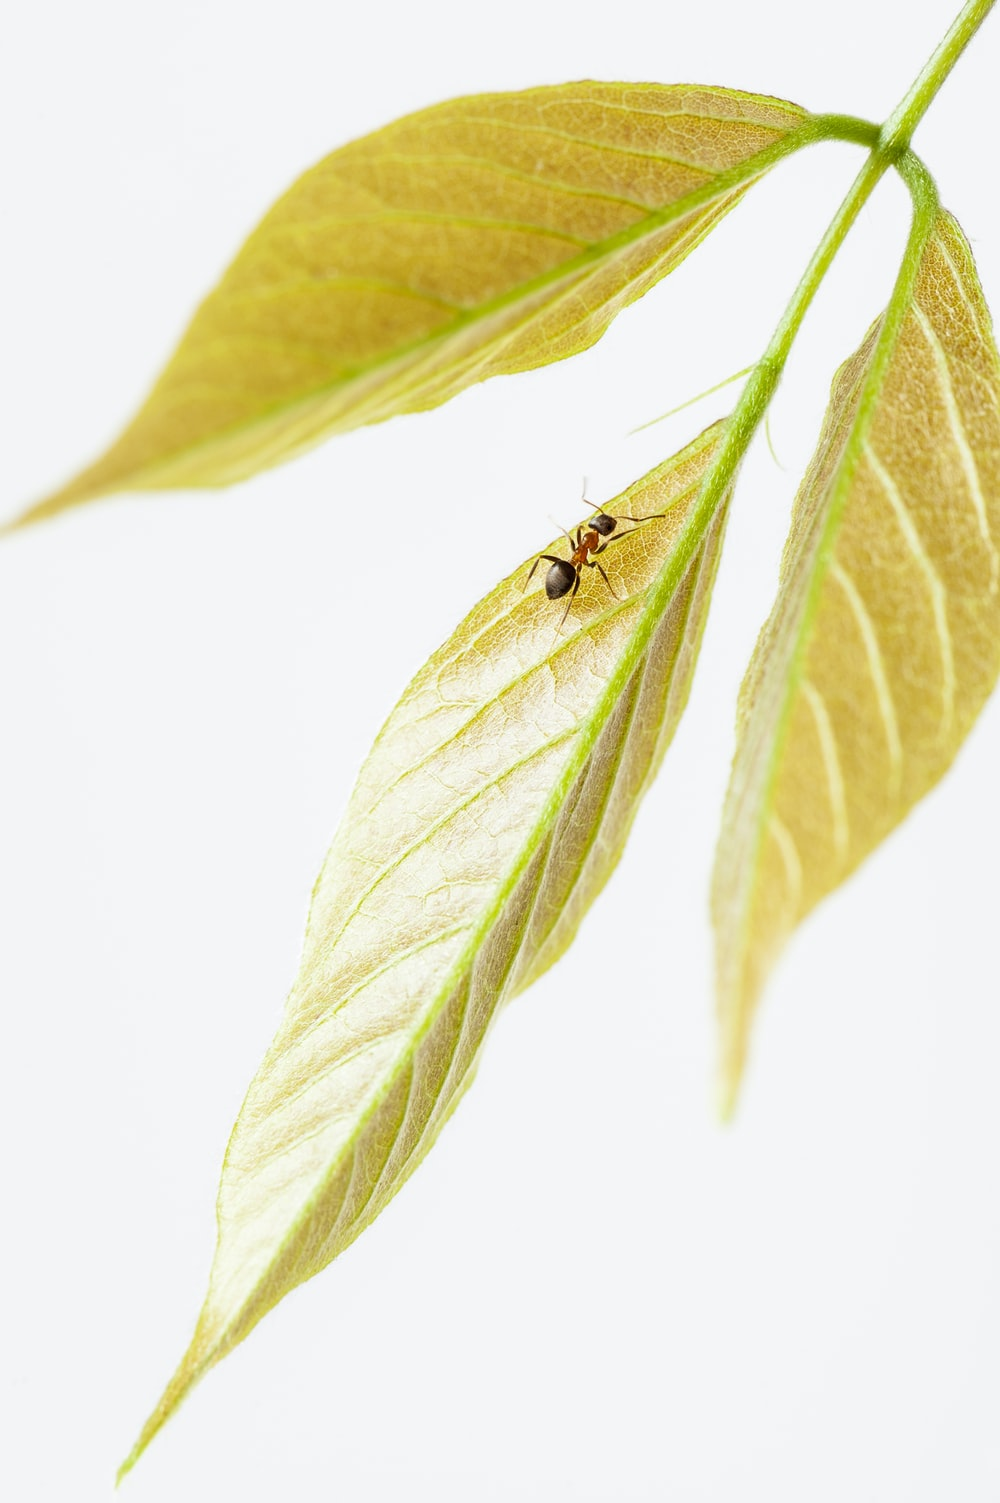 macro photography of brown ant on the leaf